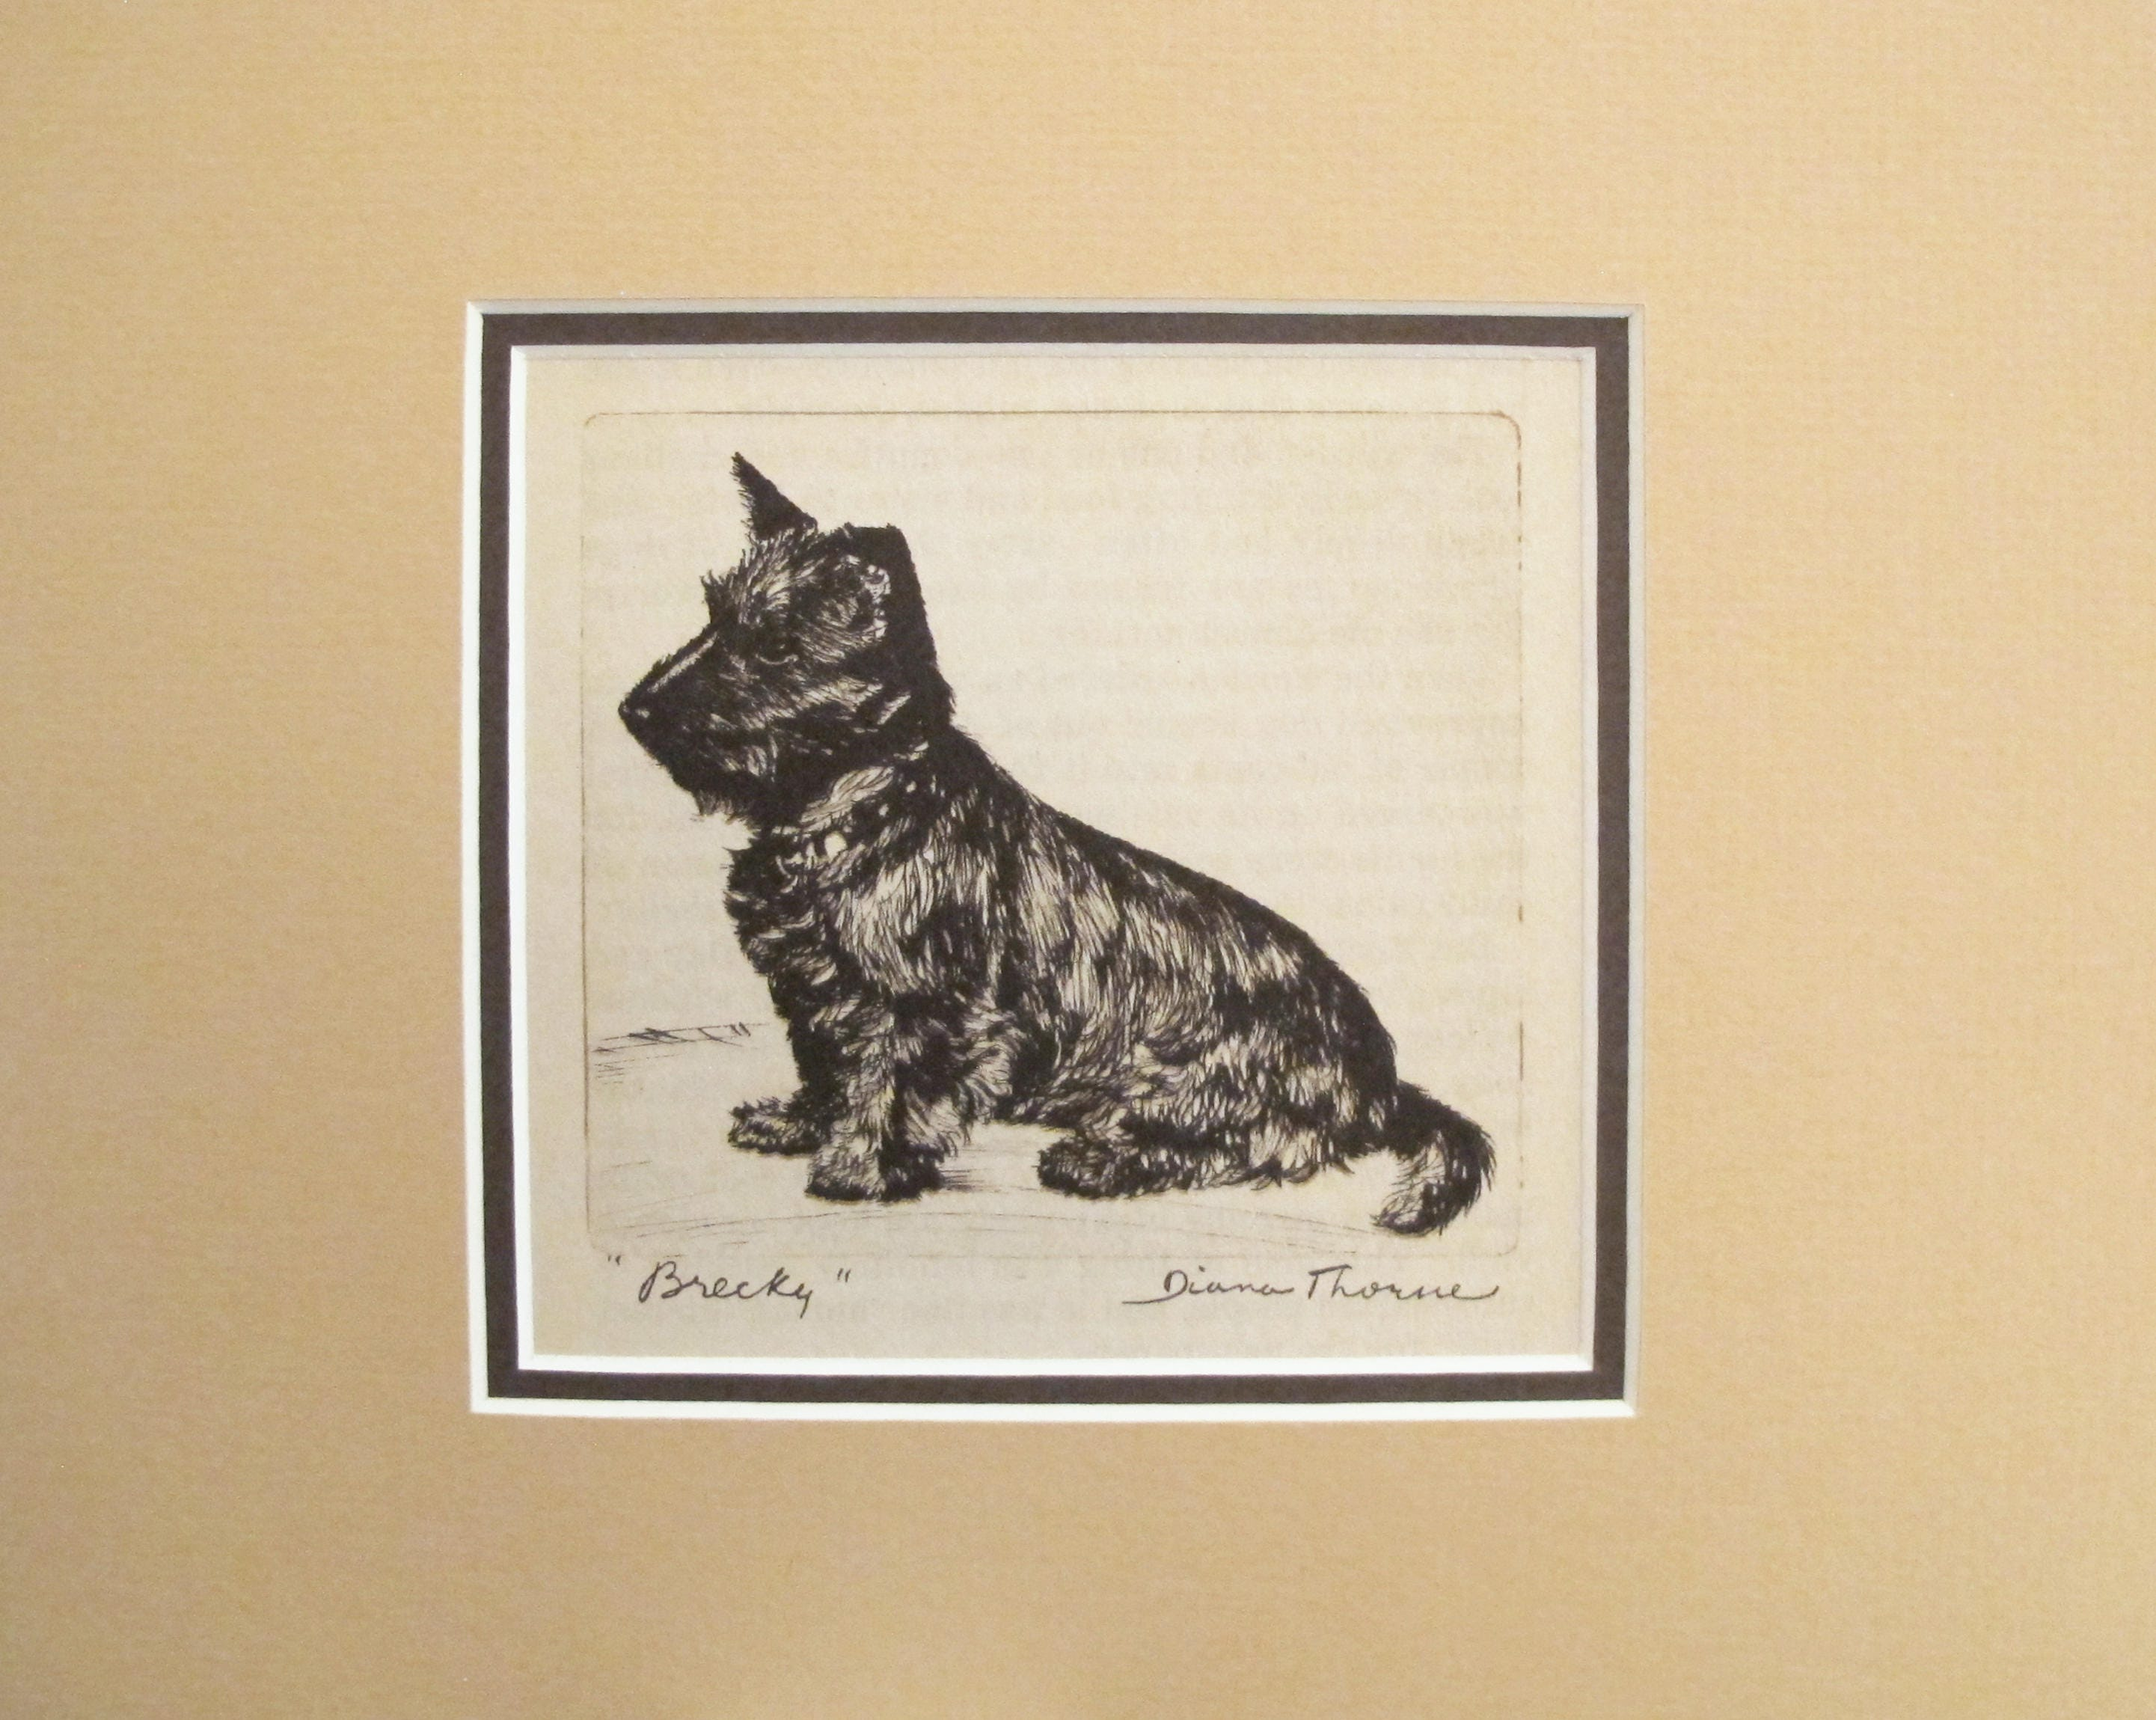 1936 Matted Dog Print Diana Thorne Brecky